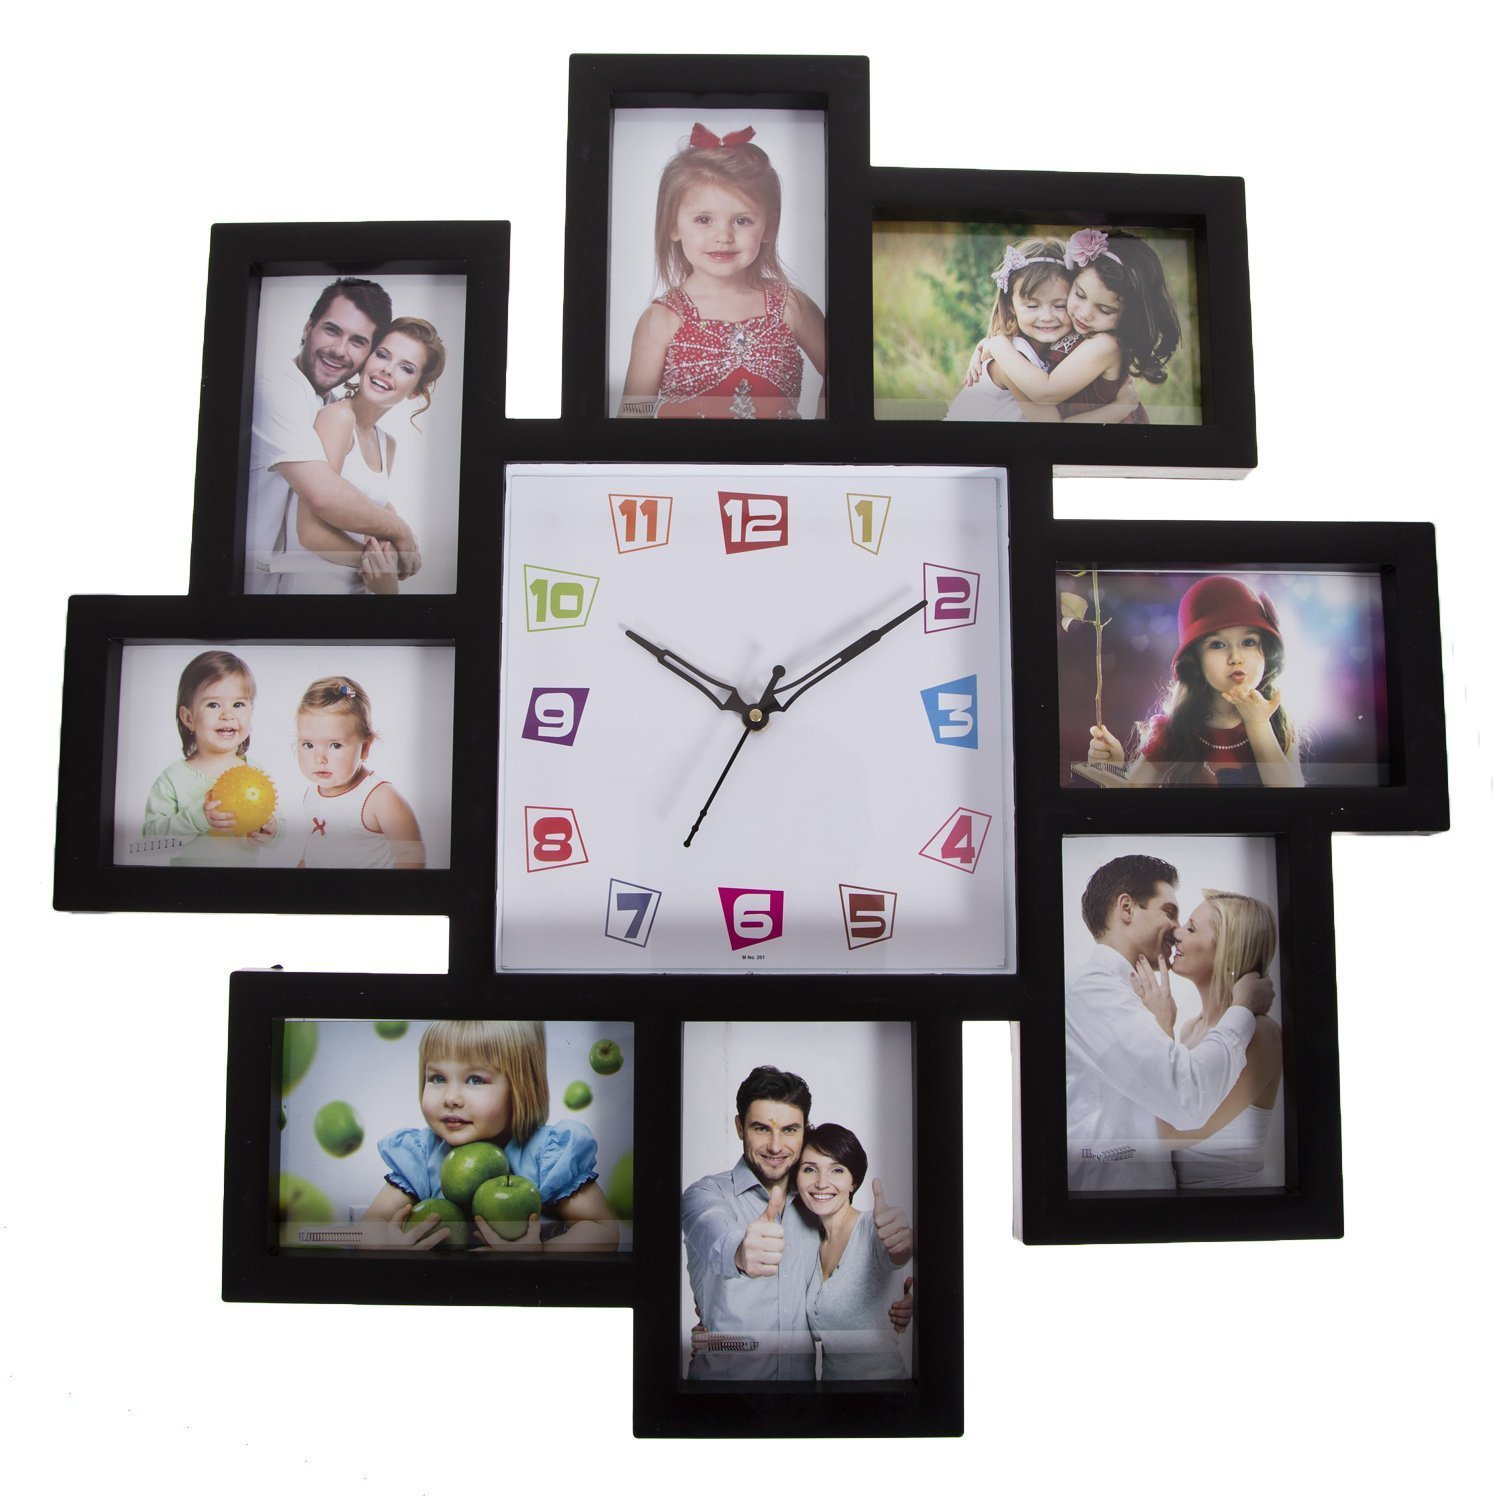 Buy Smera Plastic Wall Clock with Photo Frame Collage (Black) Online at Low  Prices in India - Amazon.in